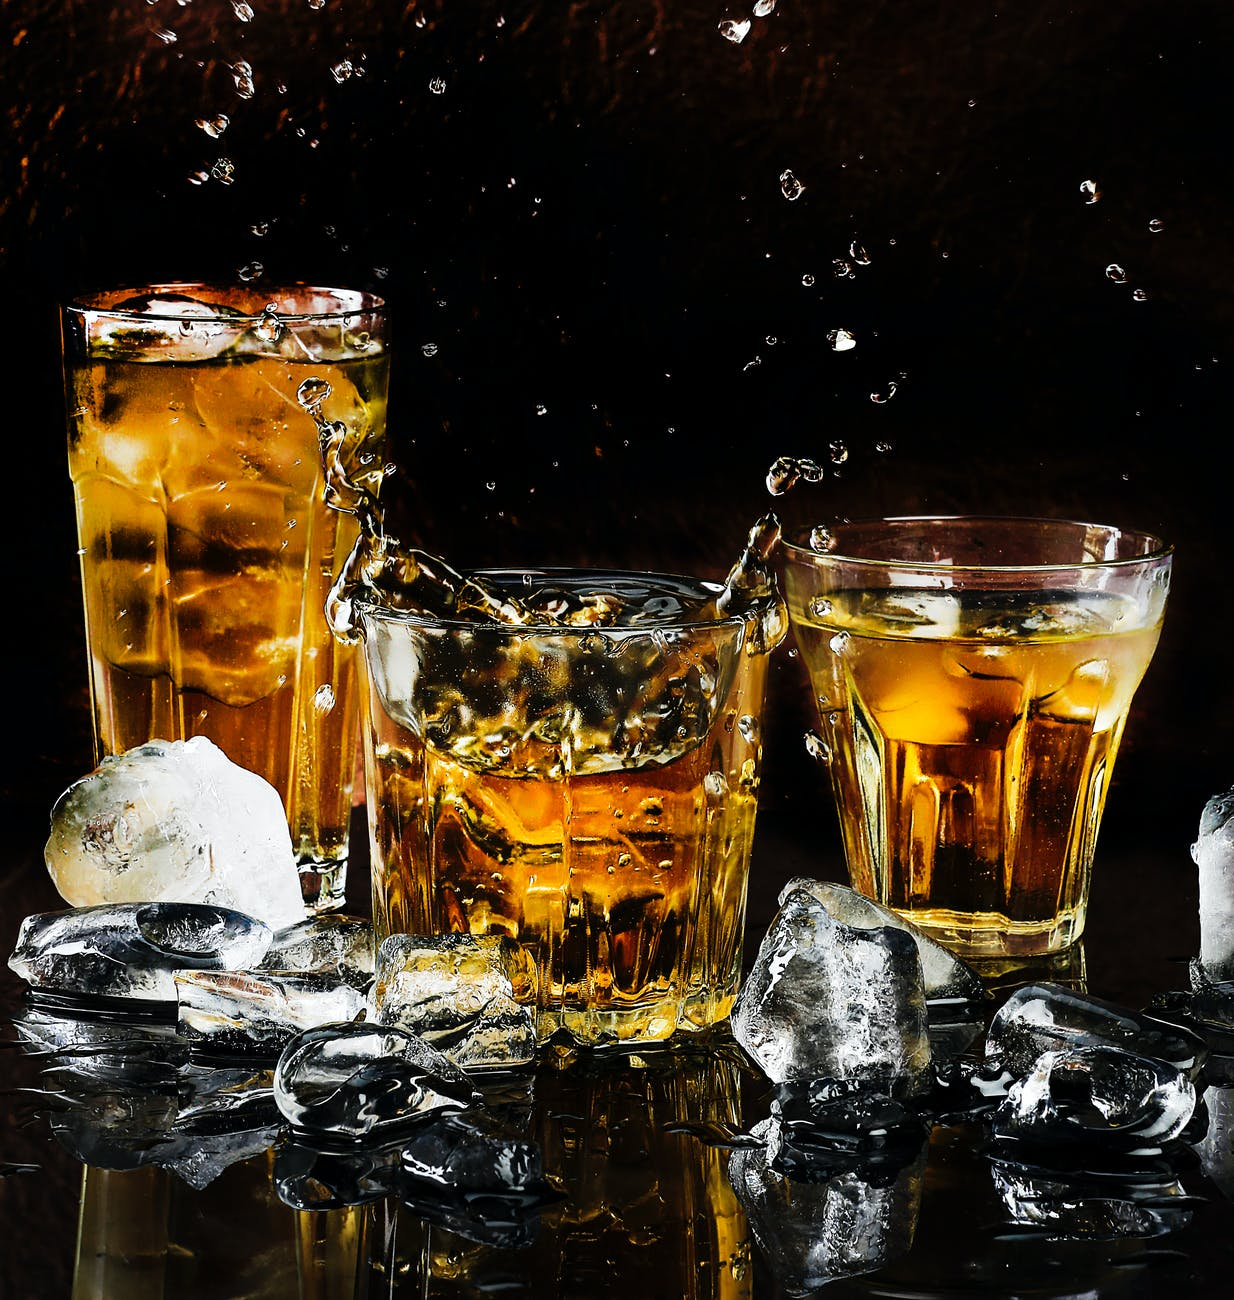 Indianapolis' Top Spirits Events and 10th Annual Indy's Whisky & Fine Spirits Expo!